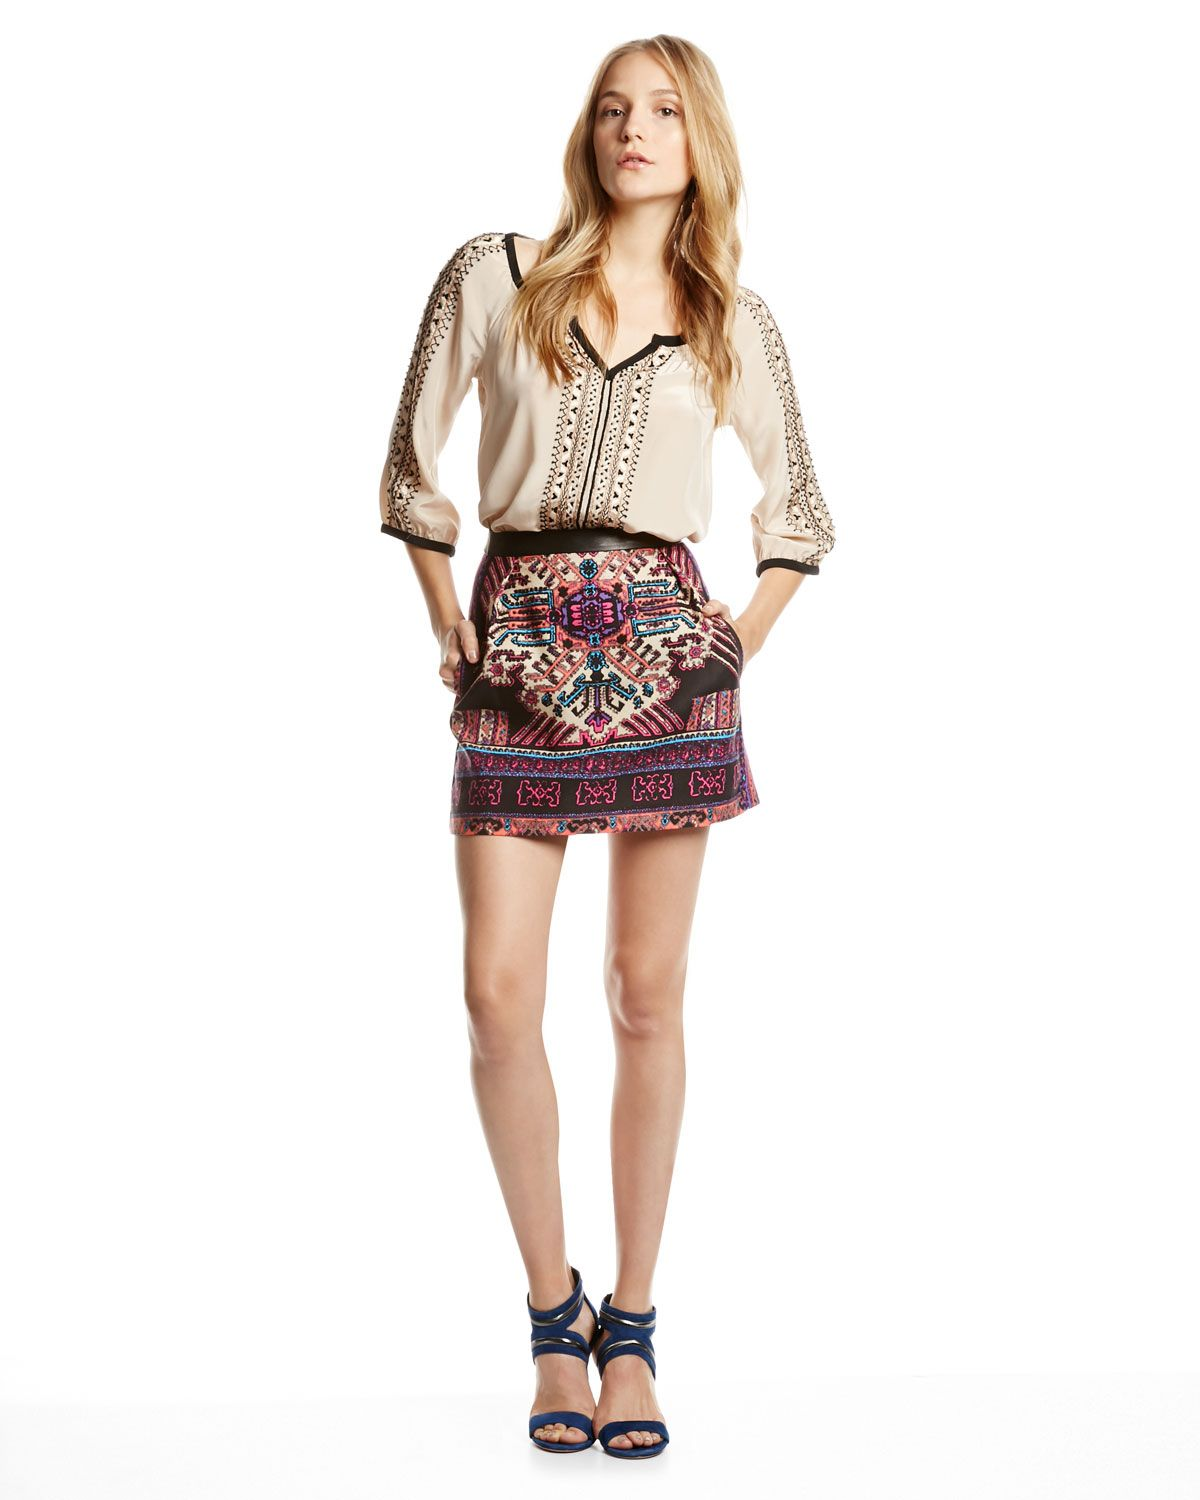 Nanette Lepore Tipis Embroidered Contrast-Trim Top & Ritual Embroidered Short Skirt - Neiman Marcus